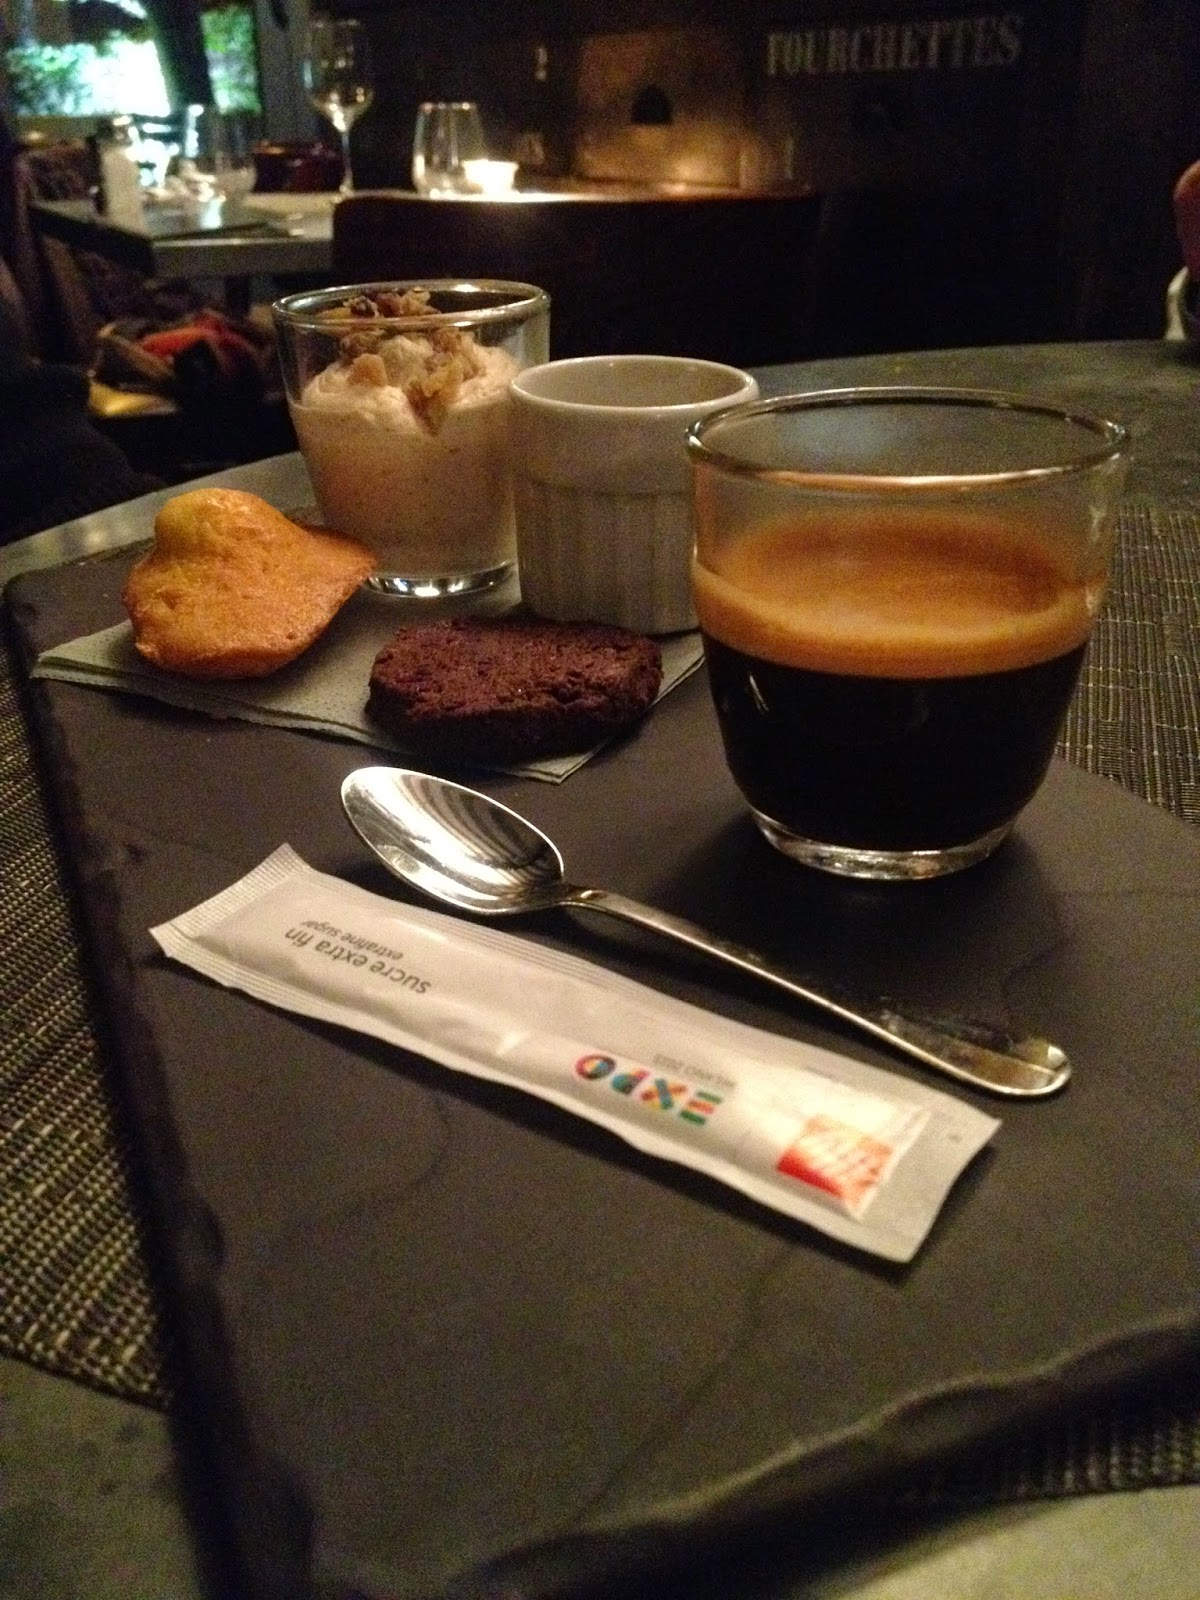 Café gourmand at Au Père Lapin, Suresnes, France